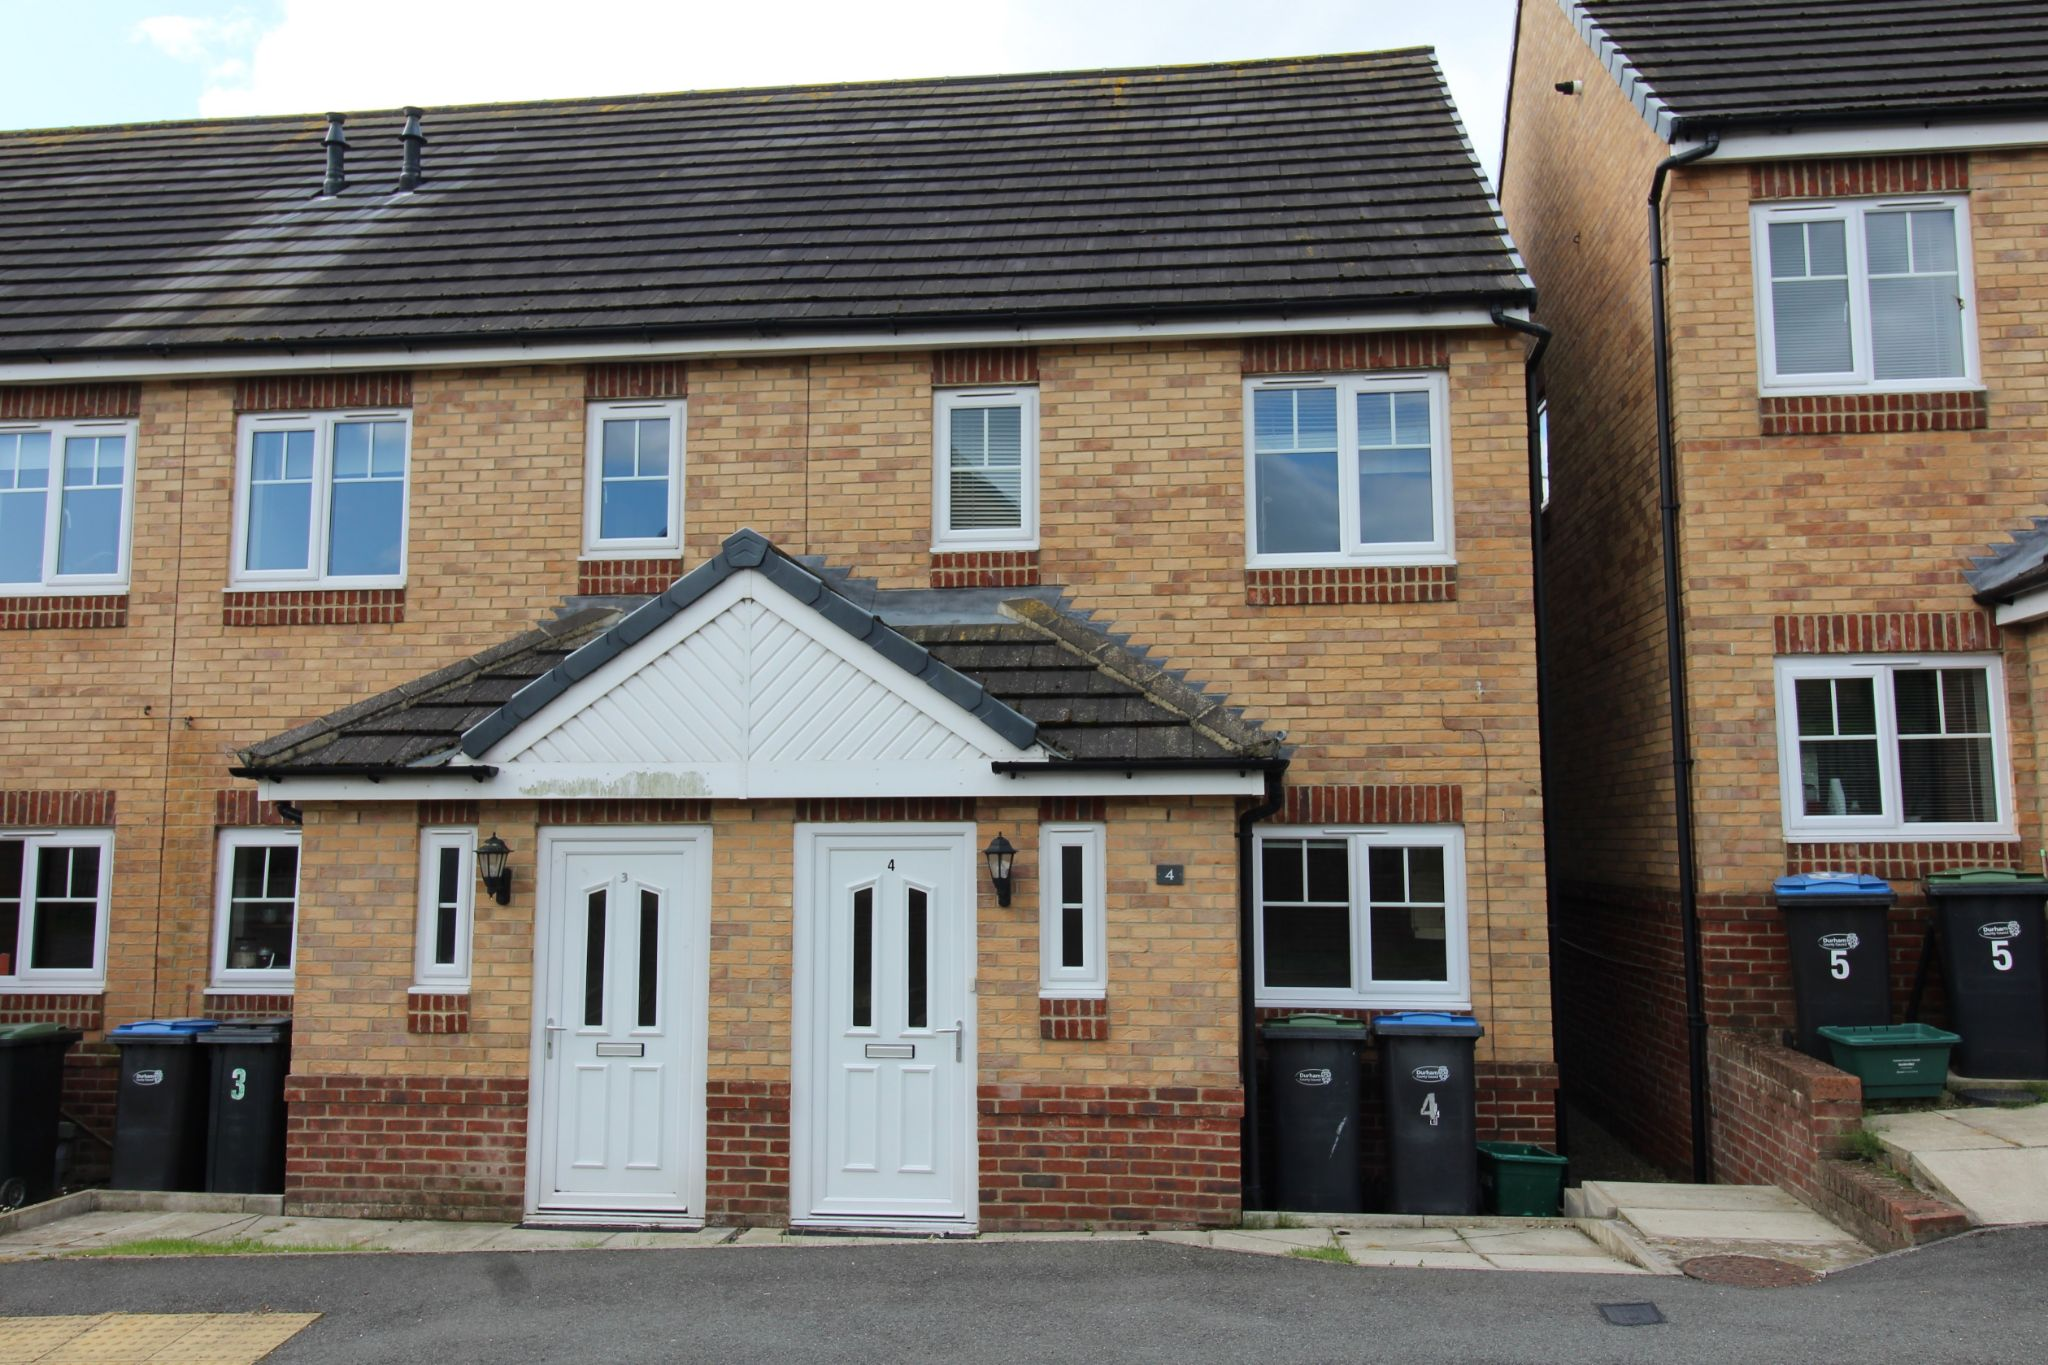 3 bedroom end terraced house Let in Durham - Photograph 1.